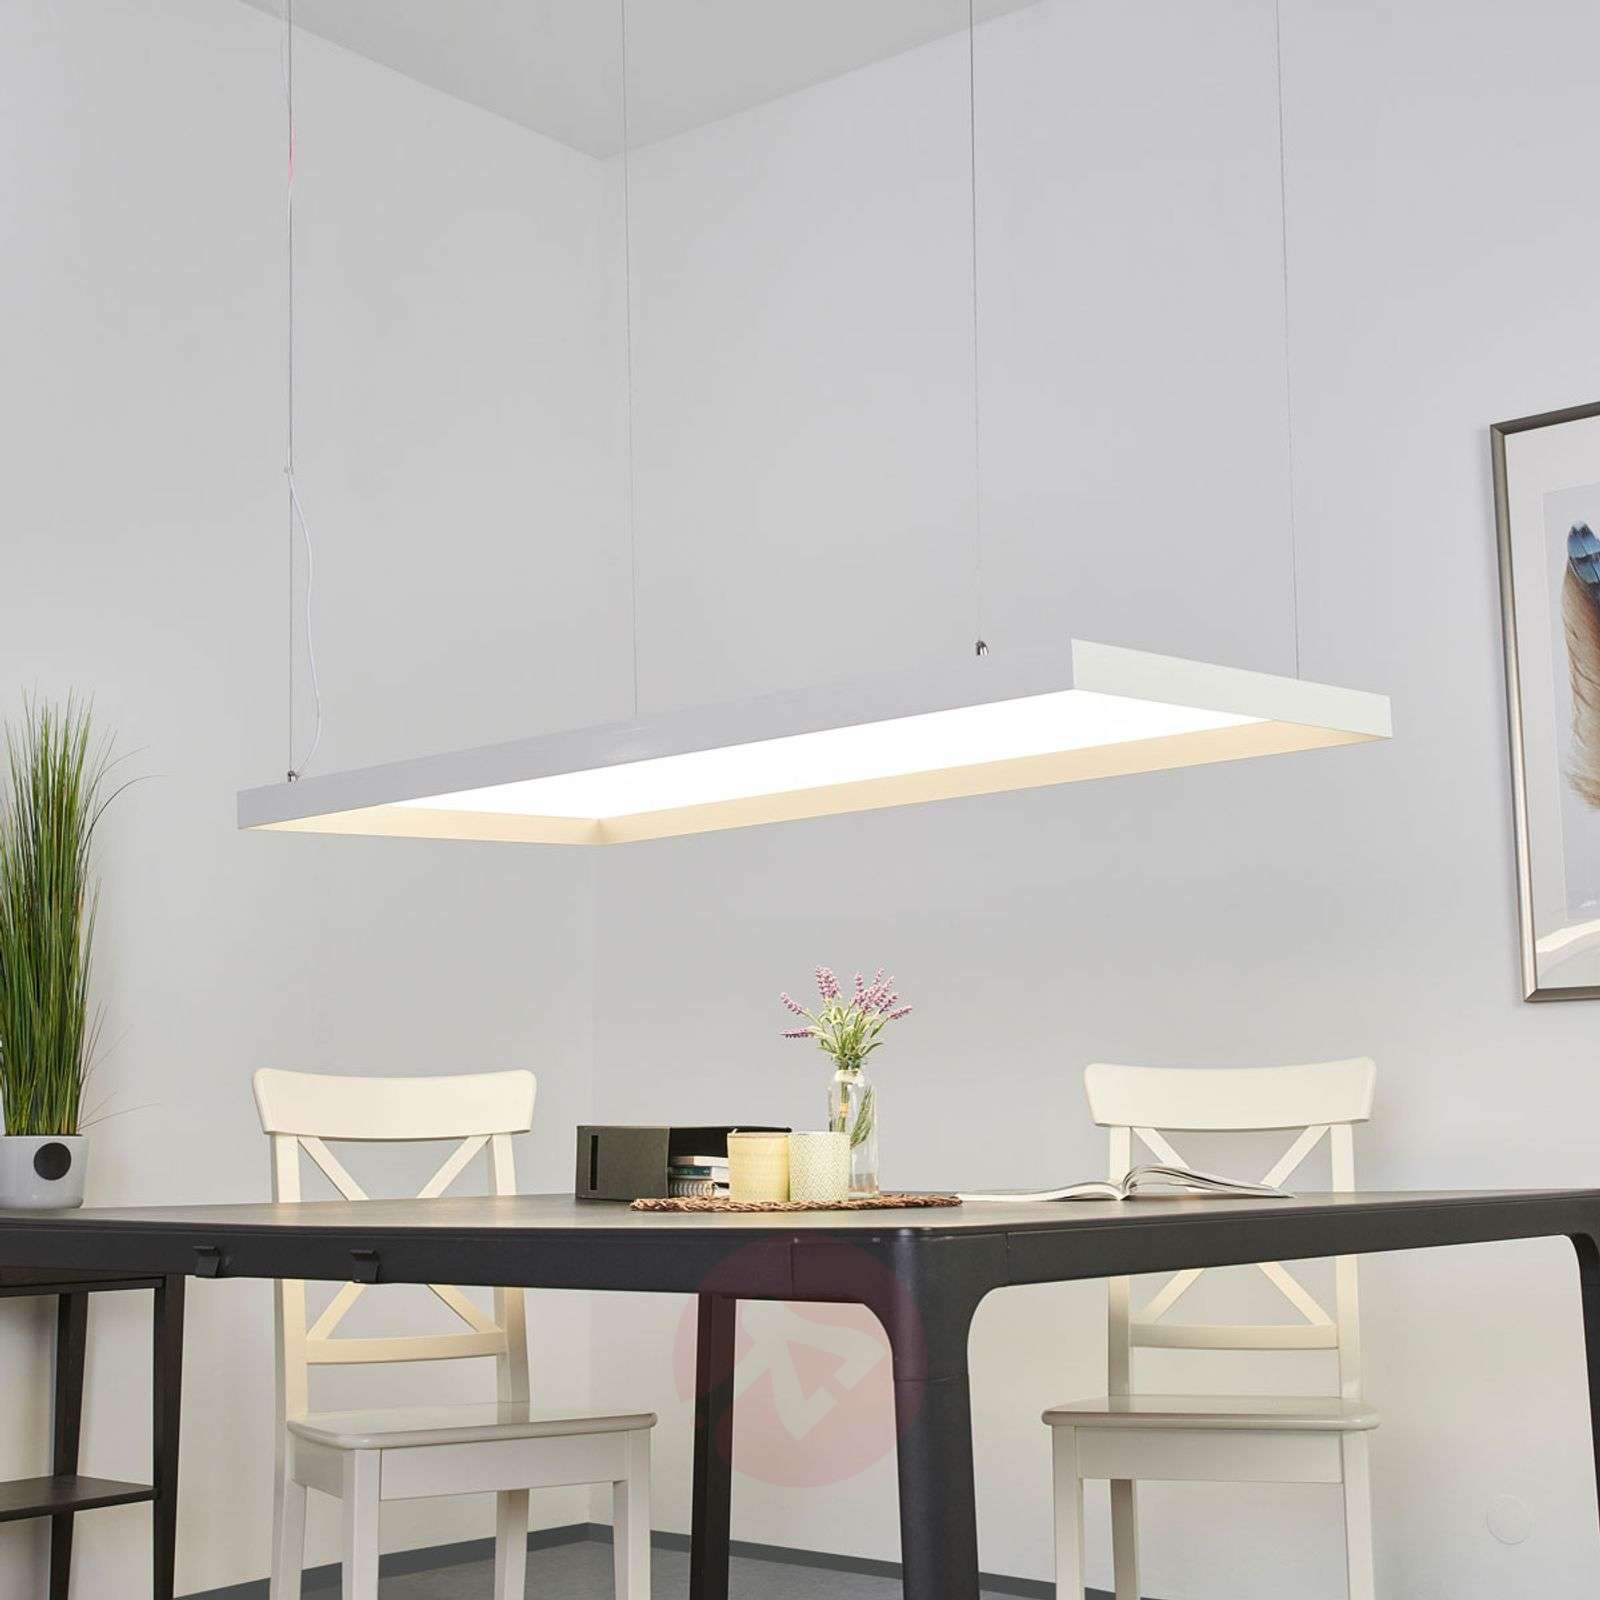 Agreable Suspension LED Office Daryl, éclairage Puissant 9956023 01 ...